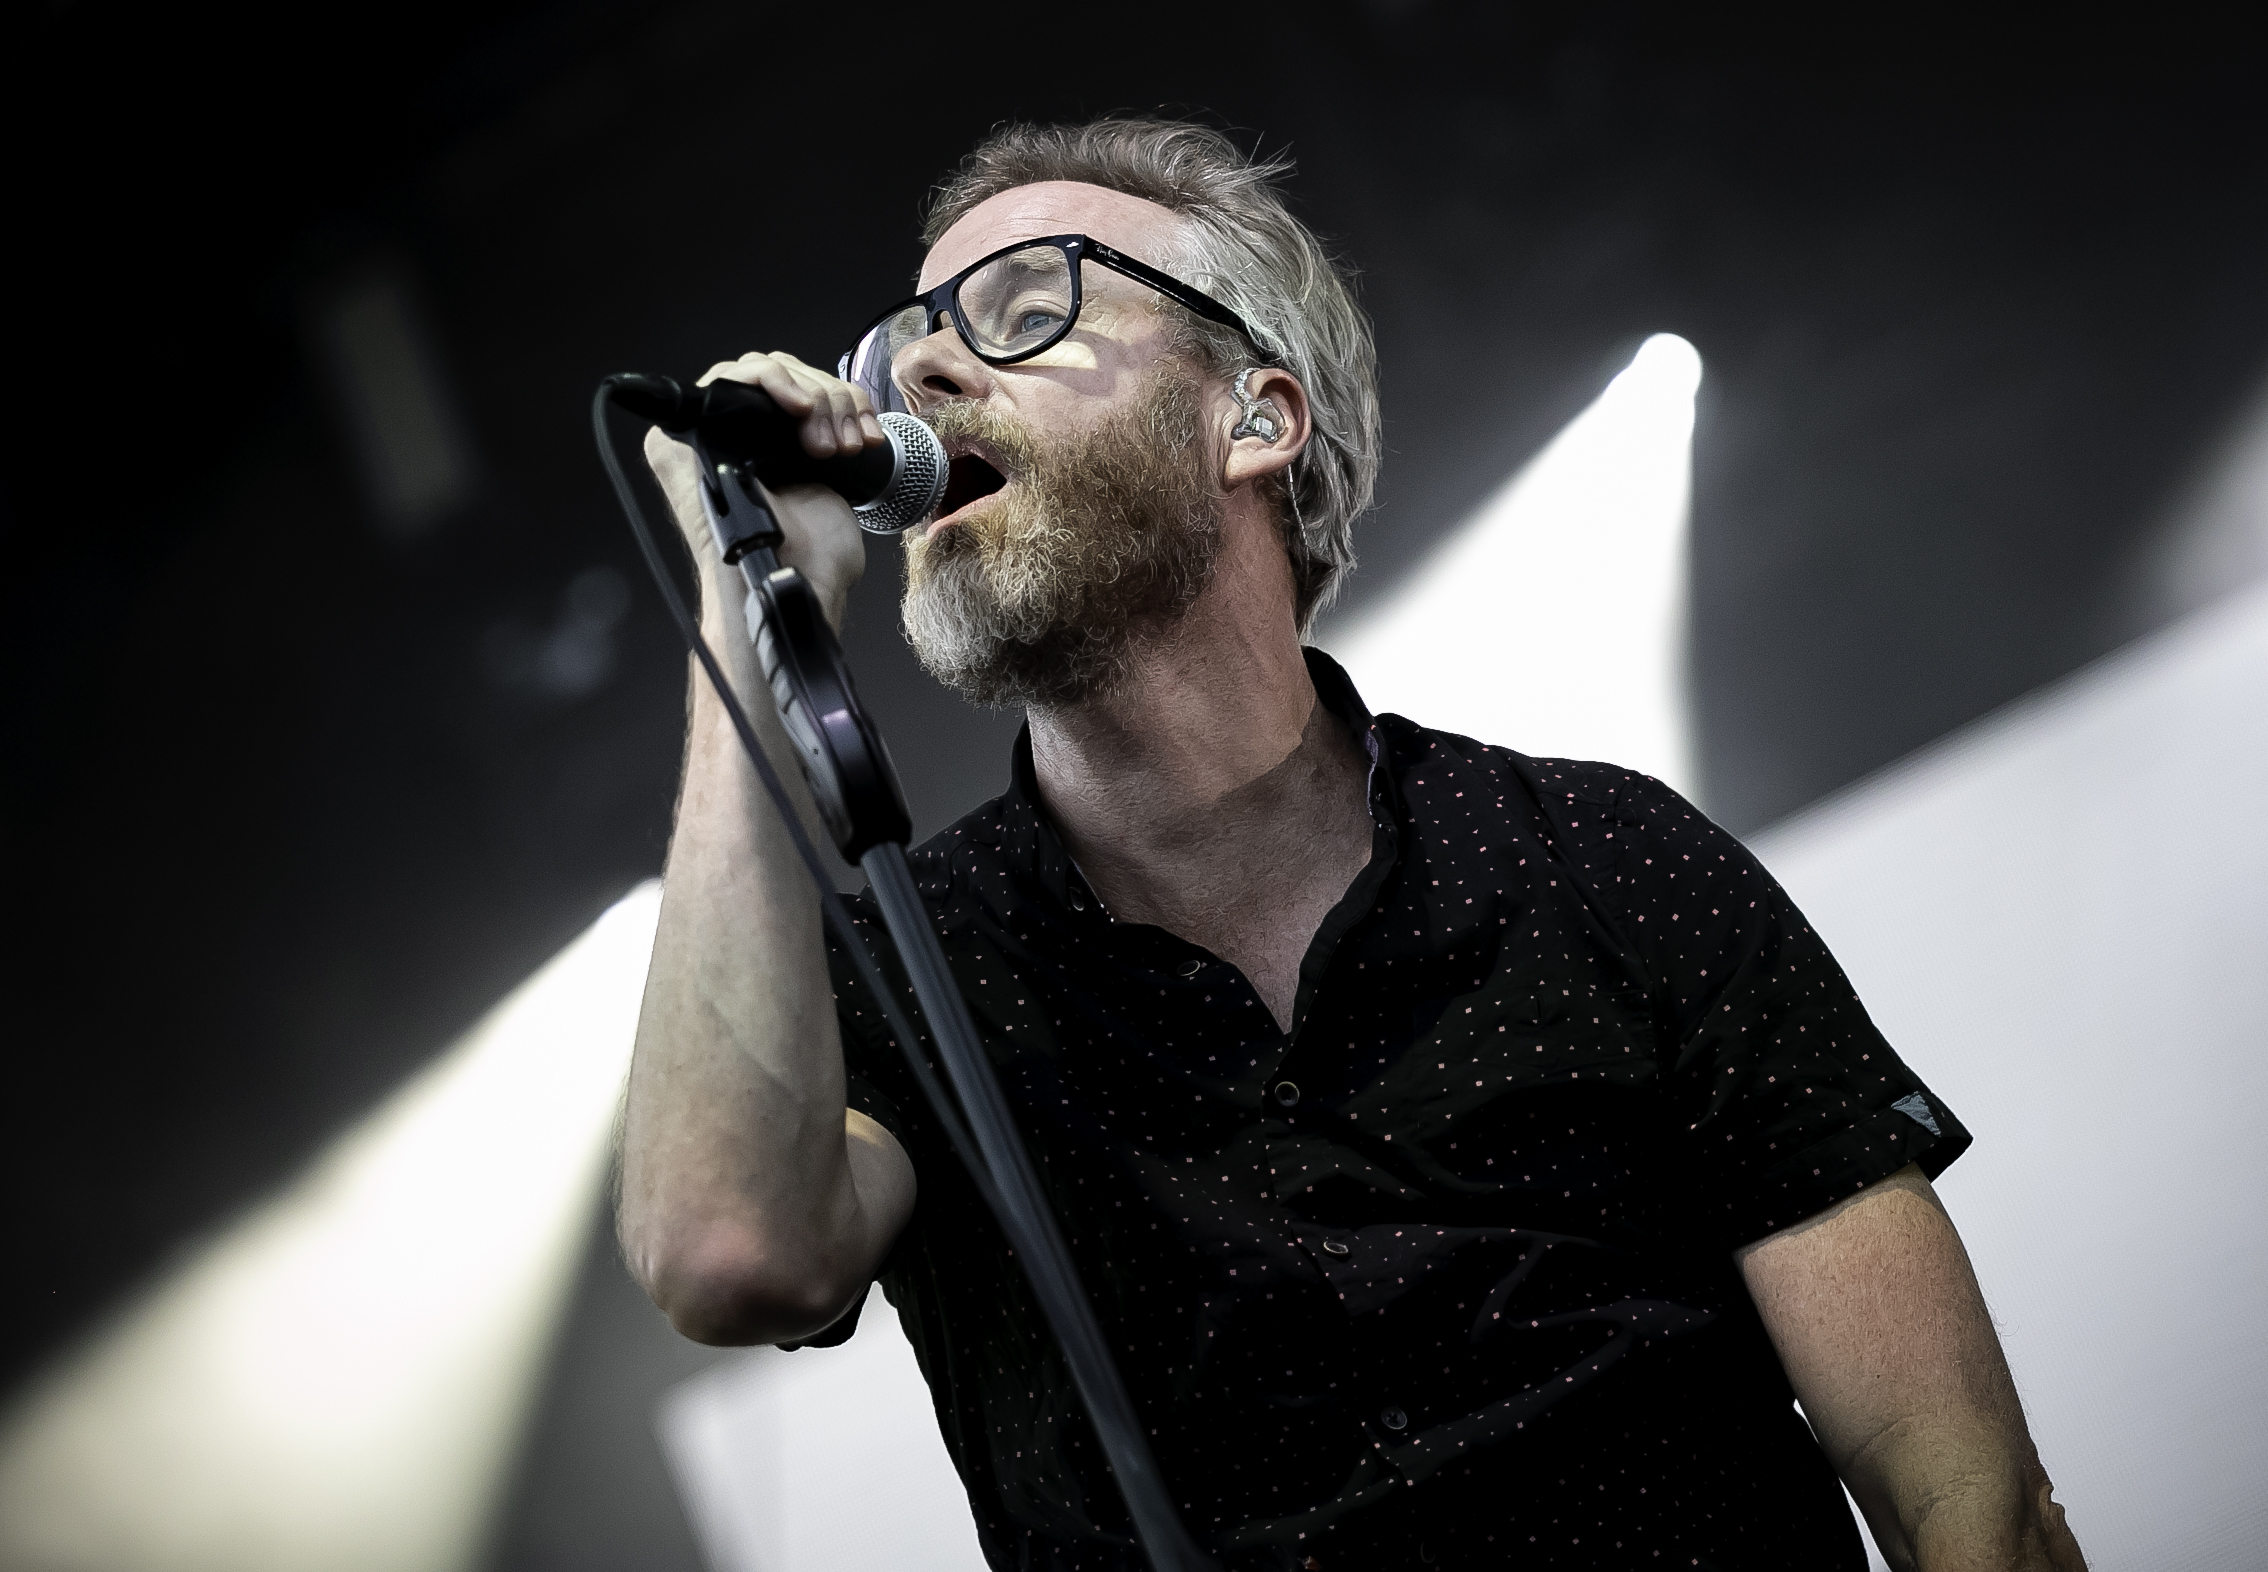 The 47-year old son of father (?) and mother(?) Matt Berninger in 2020 photo. Matt Berninger earned a unknown million dollar salary - leaving the net worth at 0.5 million in 2020